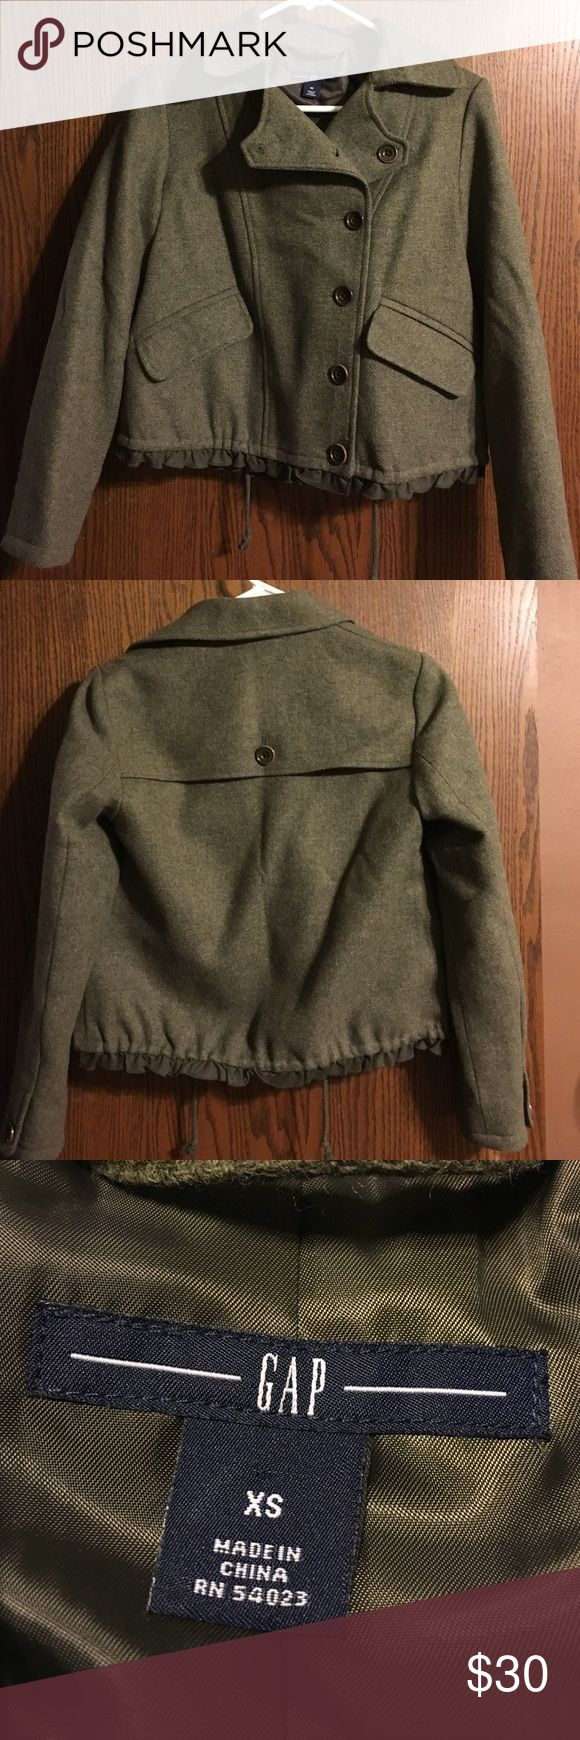 Olive Green Wool Gap Jacket Beautiful wool jacket with side buttons. In perfect condition, never worn. Has silk-like lining and draw string bottom. GAP Jackets & Coats Pea Coats